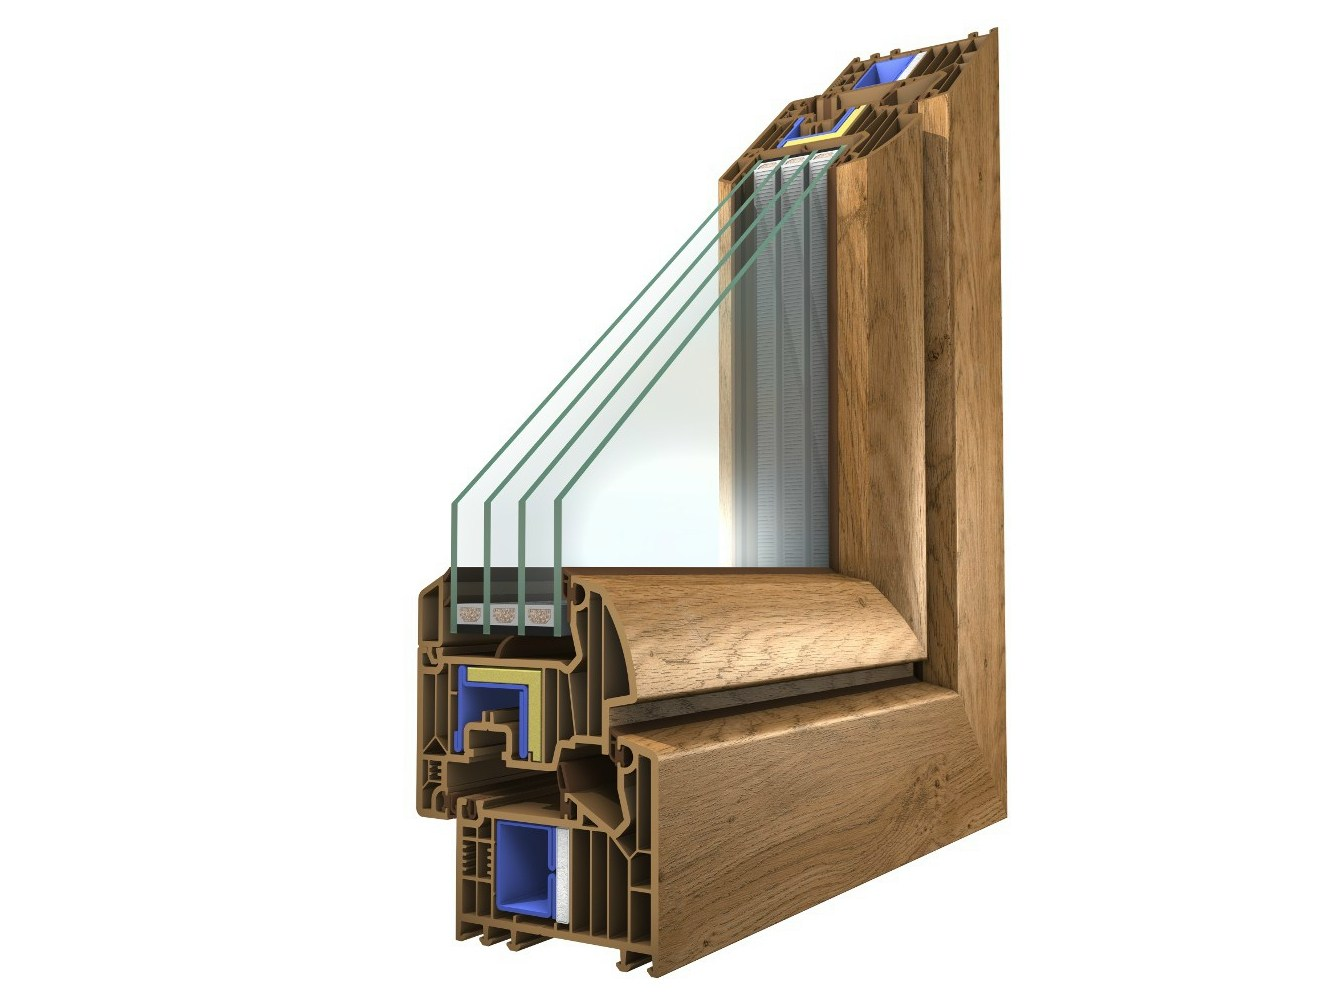 PVC WINDOW WINERGETIC PREMIUM PASSIVE WINERGETIC COLLECTION BY